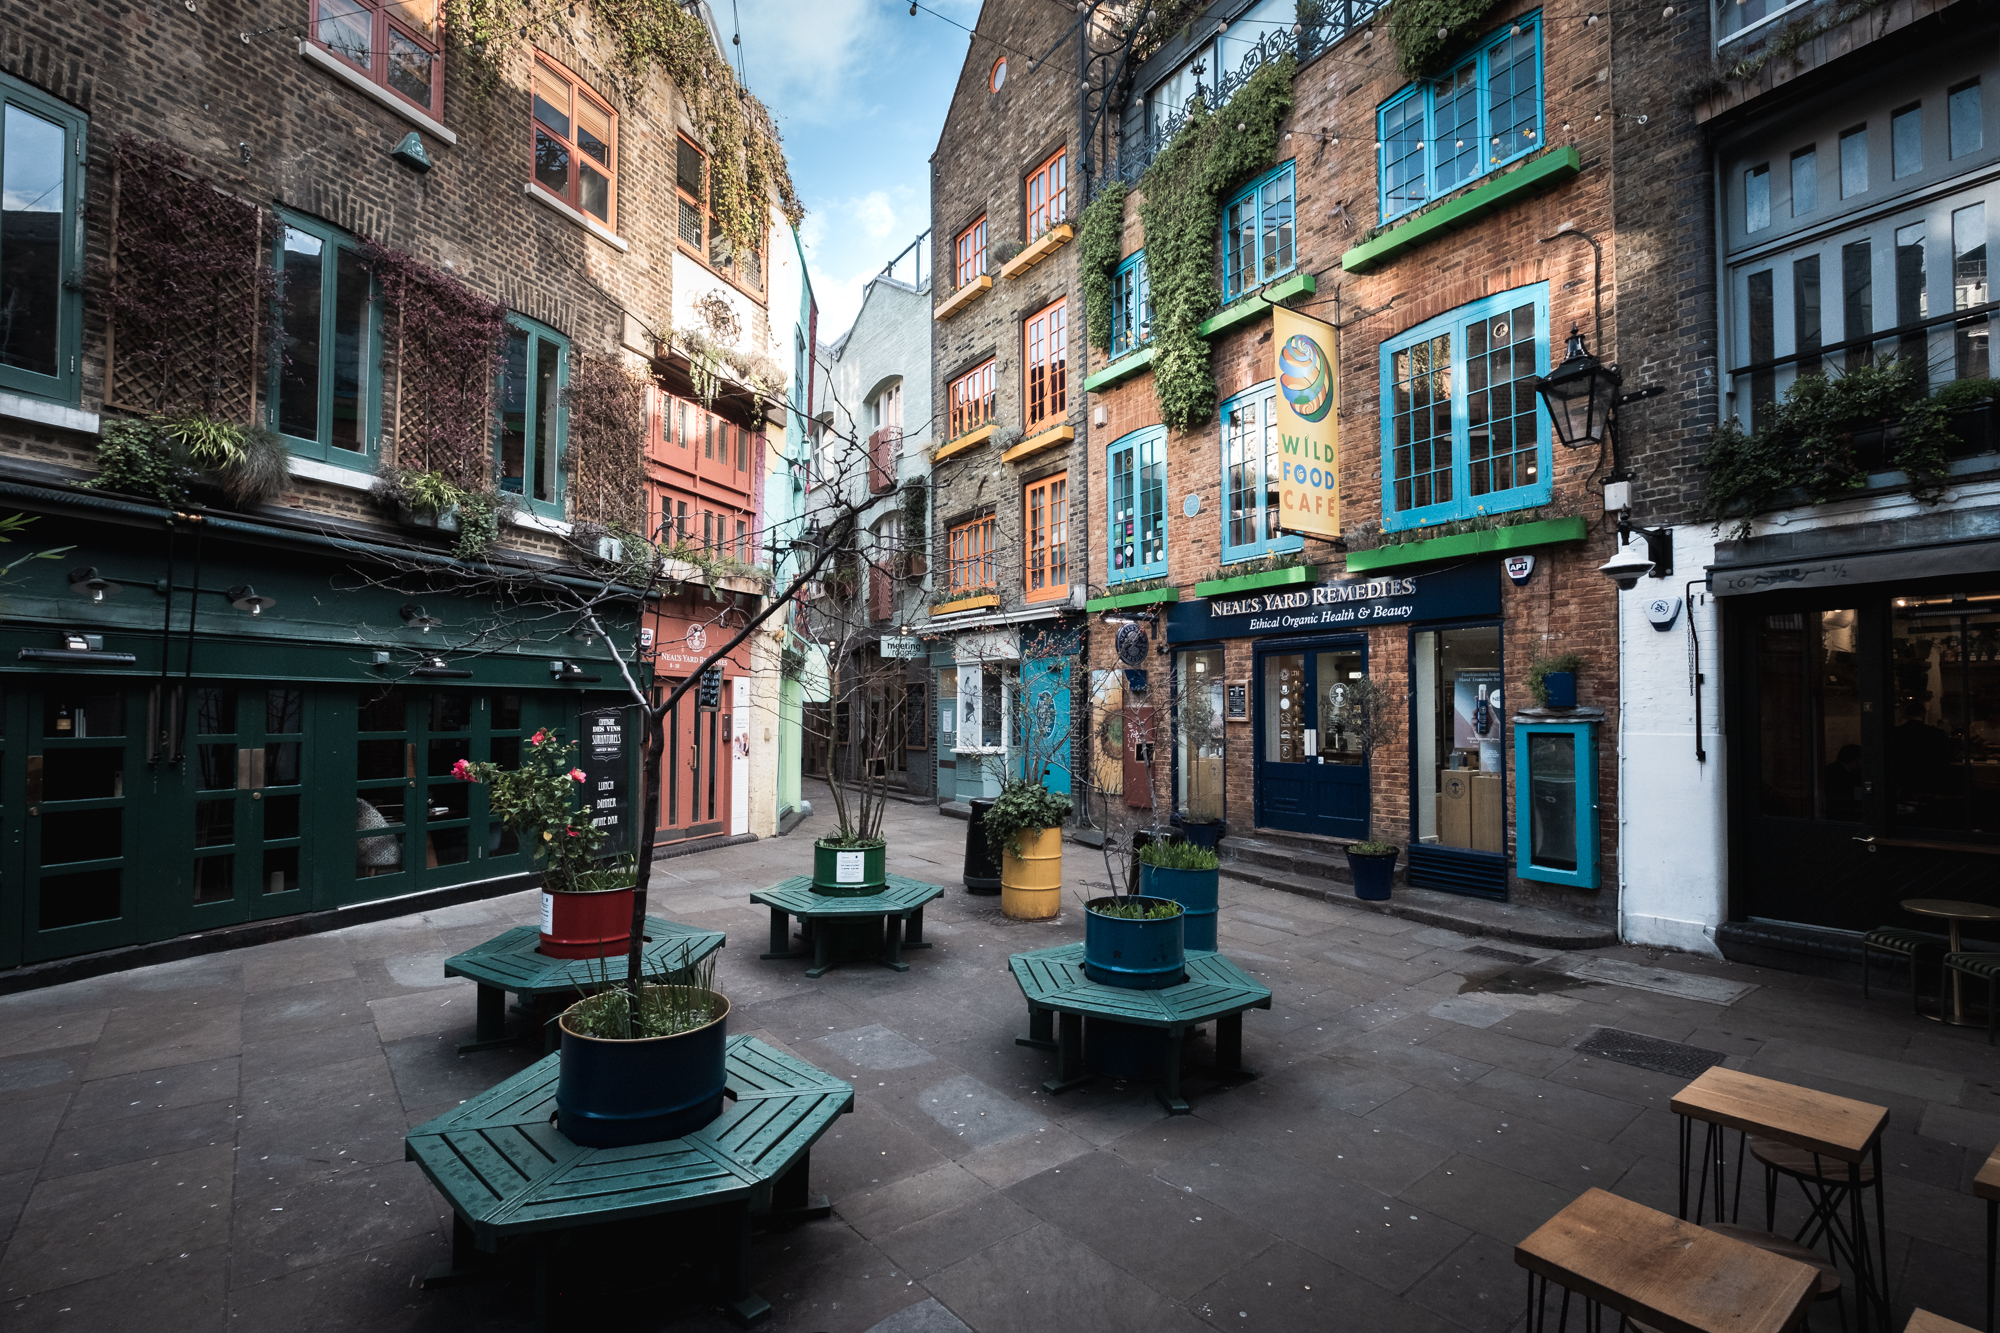 A photo of Neal's Yard, London taken by Trevor Sherwin